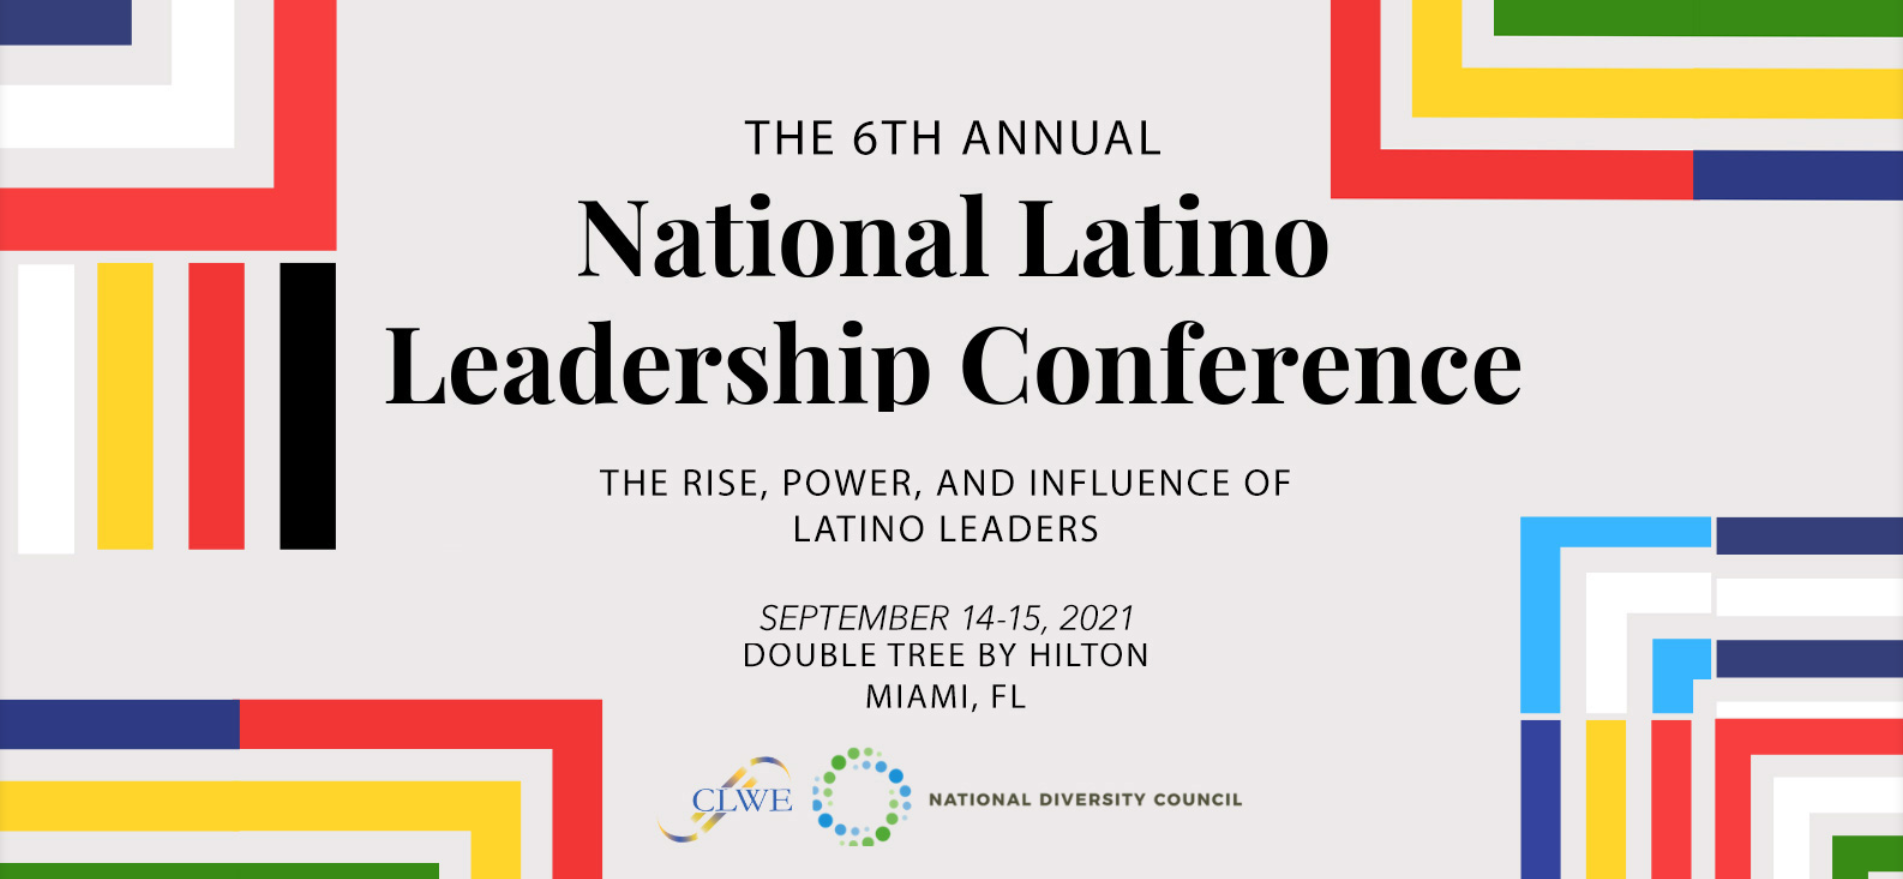 The Latino Leadership Conference